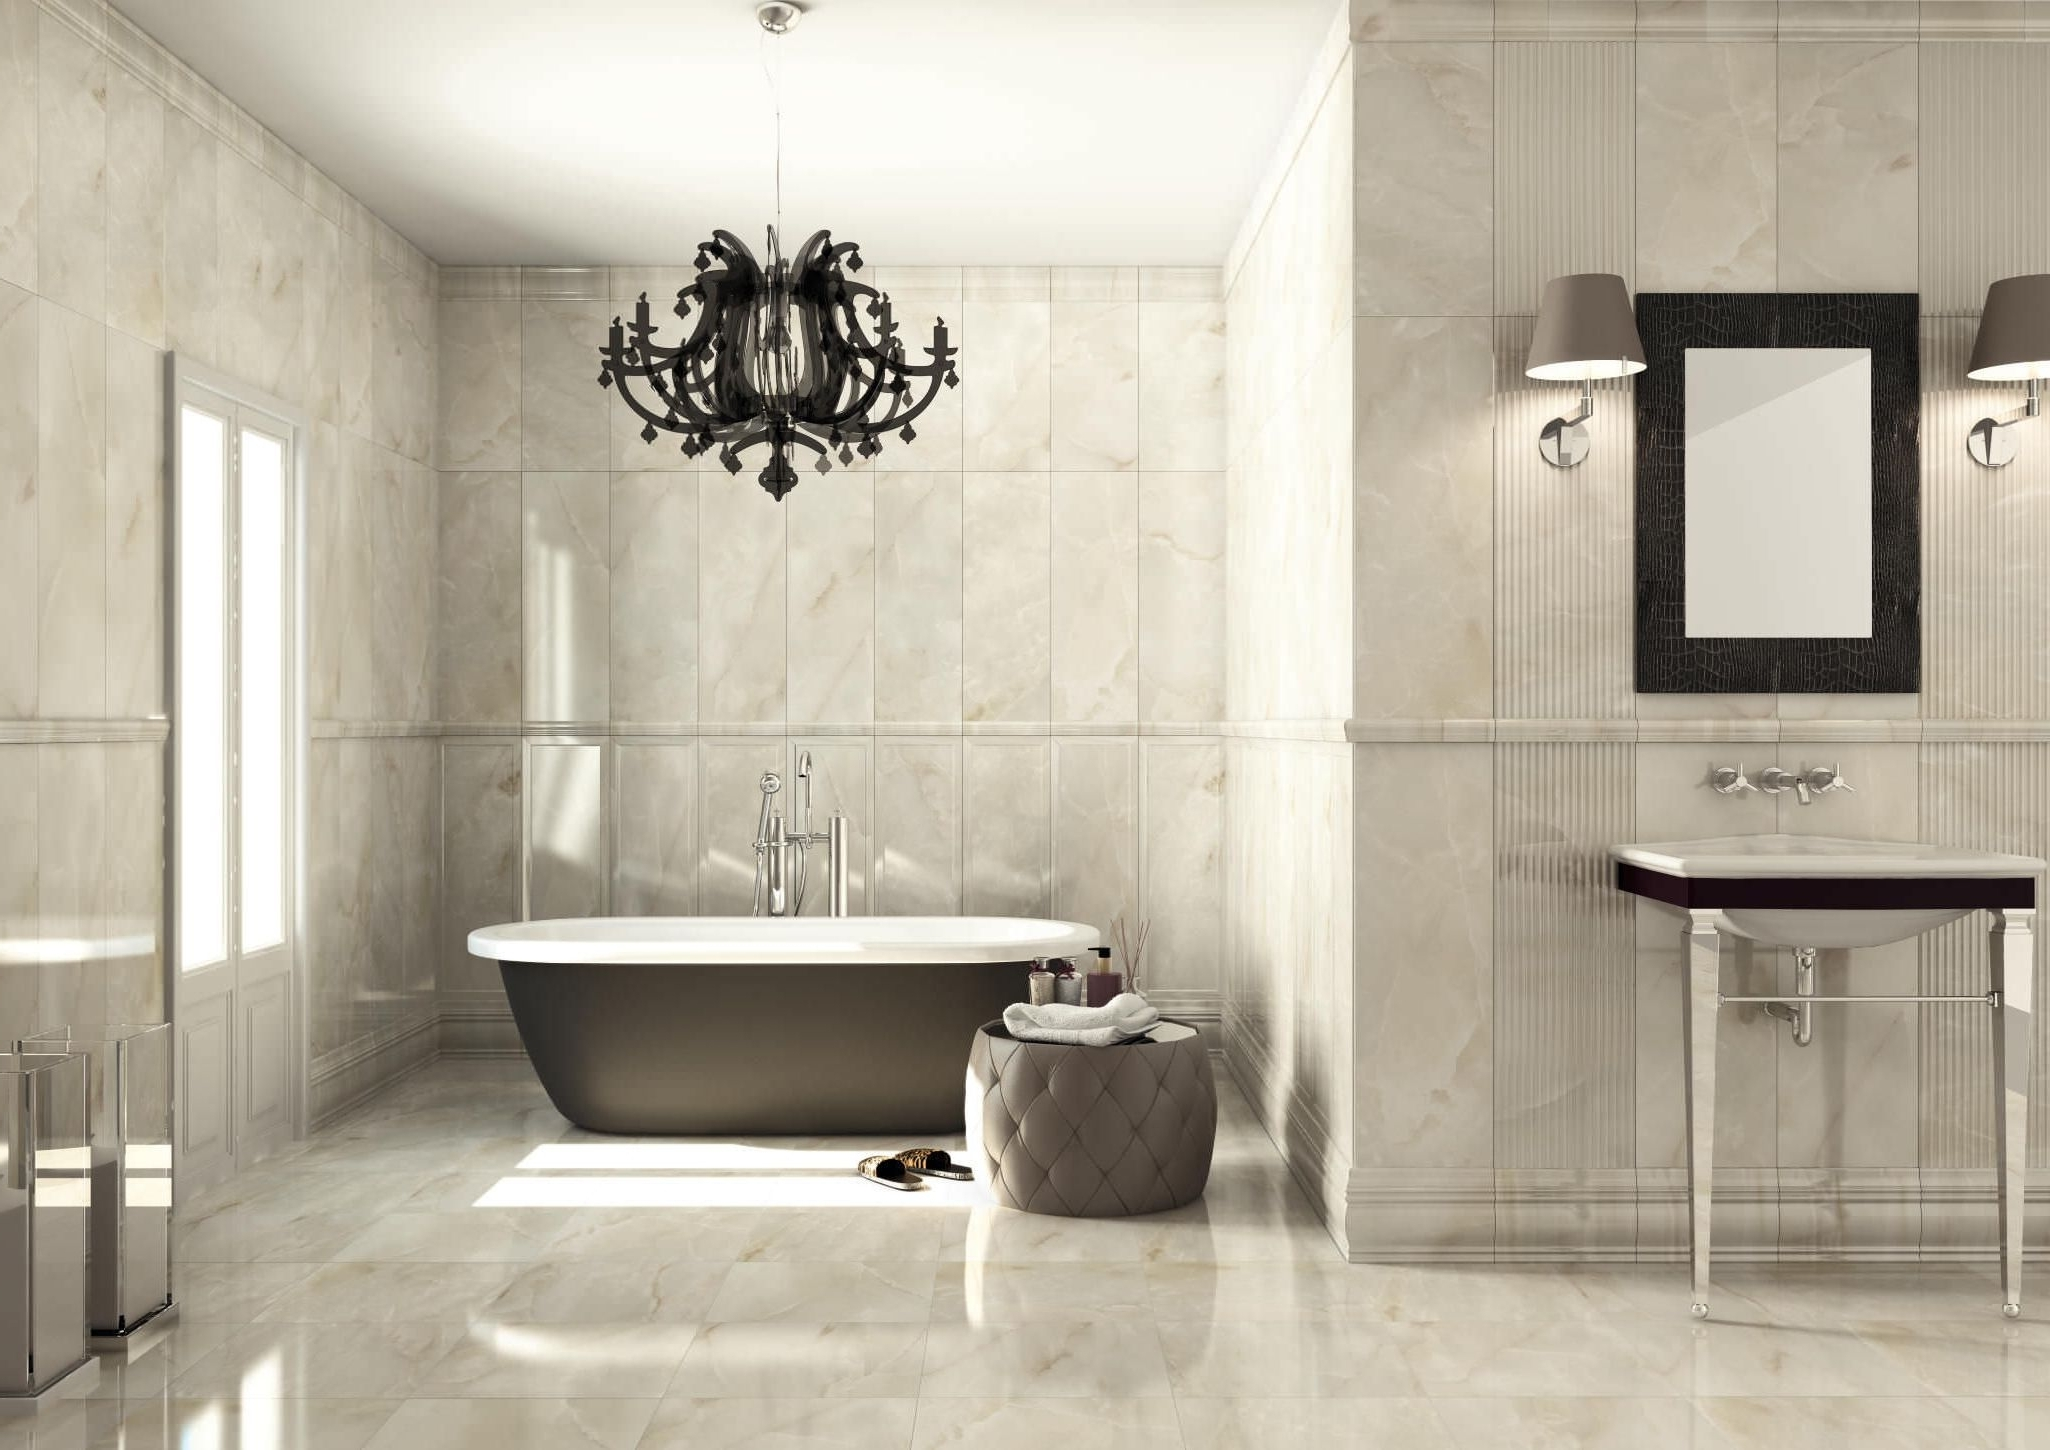 Most Current Light : Amazing Gray Marble Bathroom Wall With Nice Chandelier Inside Crystal Bathroom Chandelier (View 16 of 20)